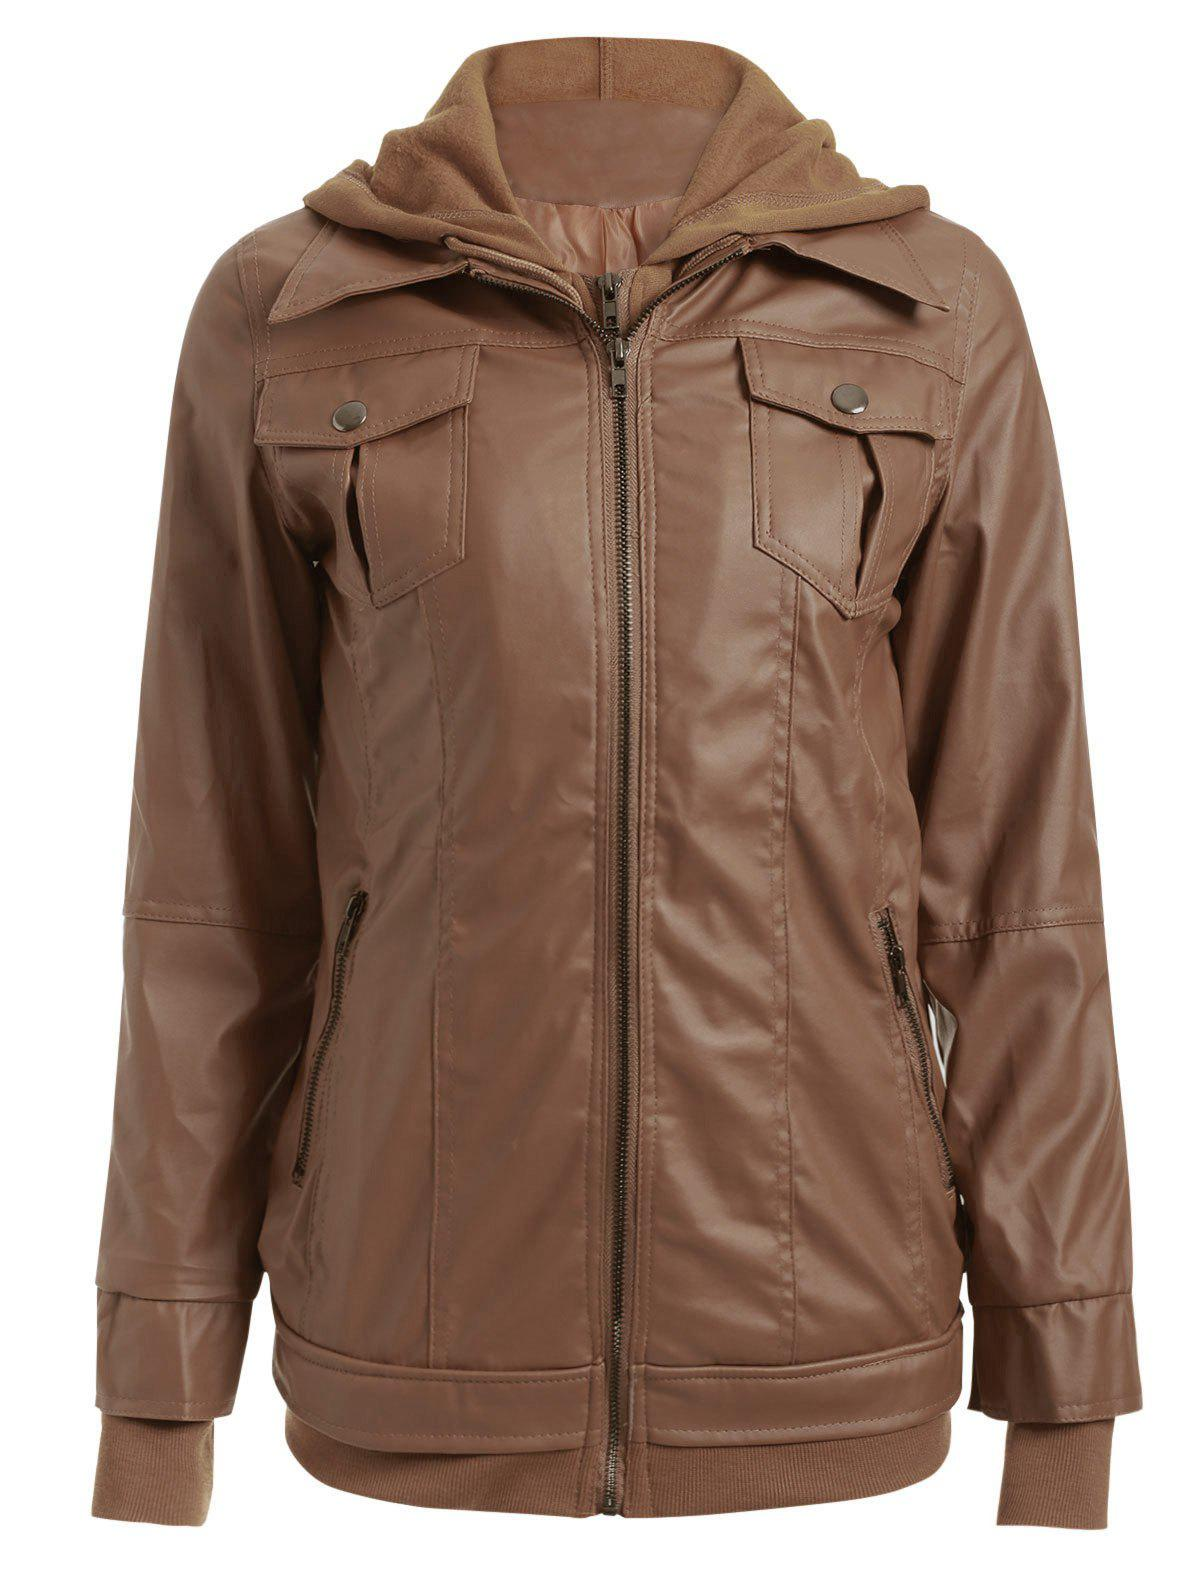 Fancy Flap Pockets Hooded Faux Leather Jacket